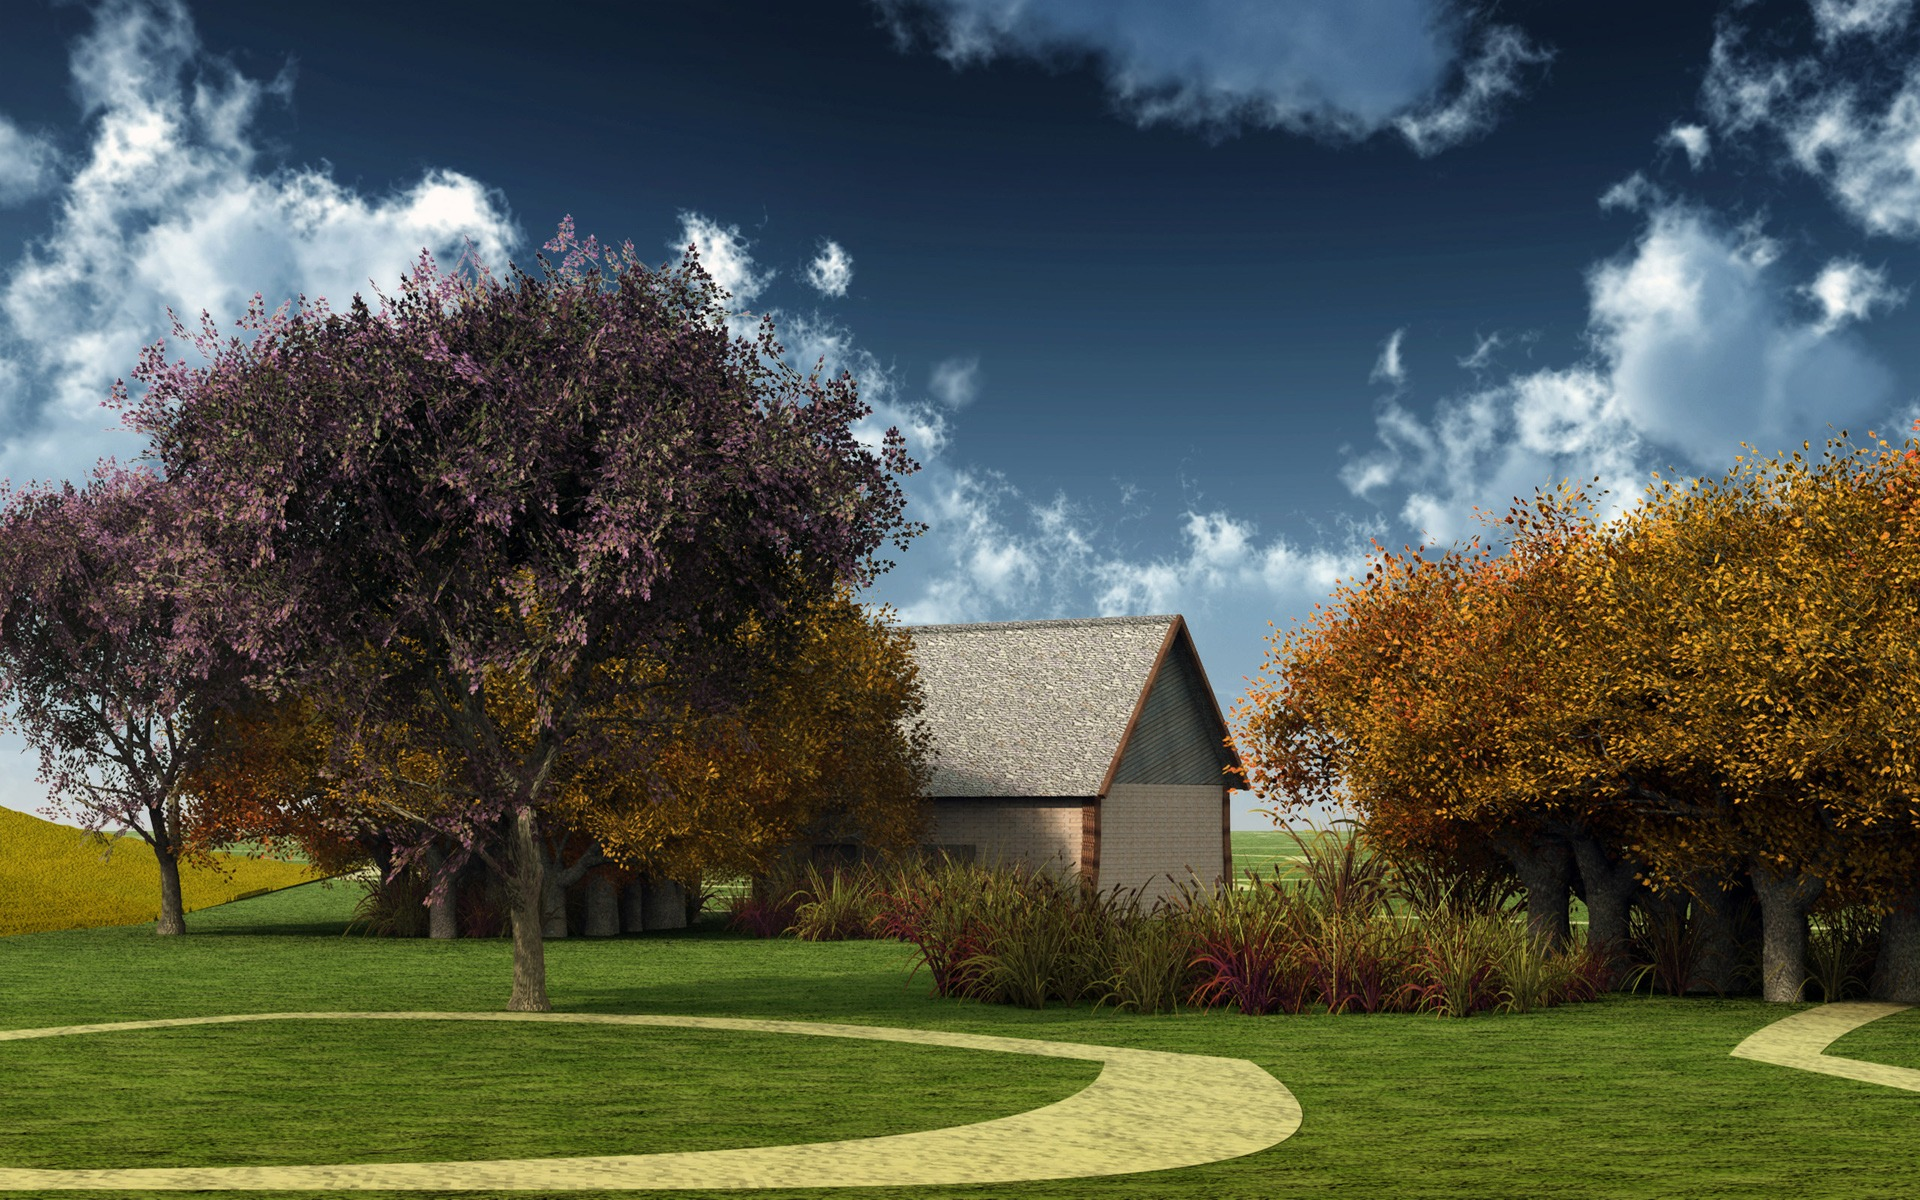 My Dream House Wallpaper Miscellaneous Other Wallpapers